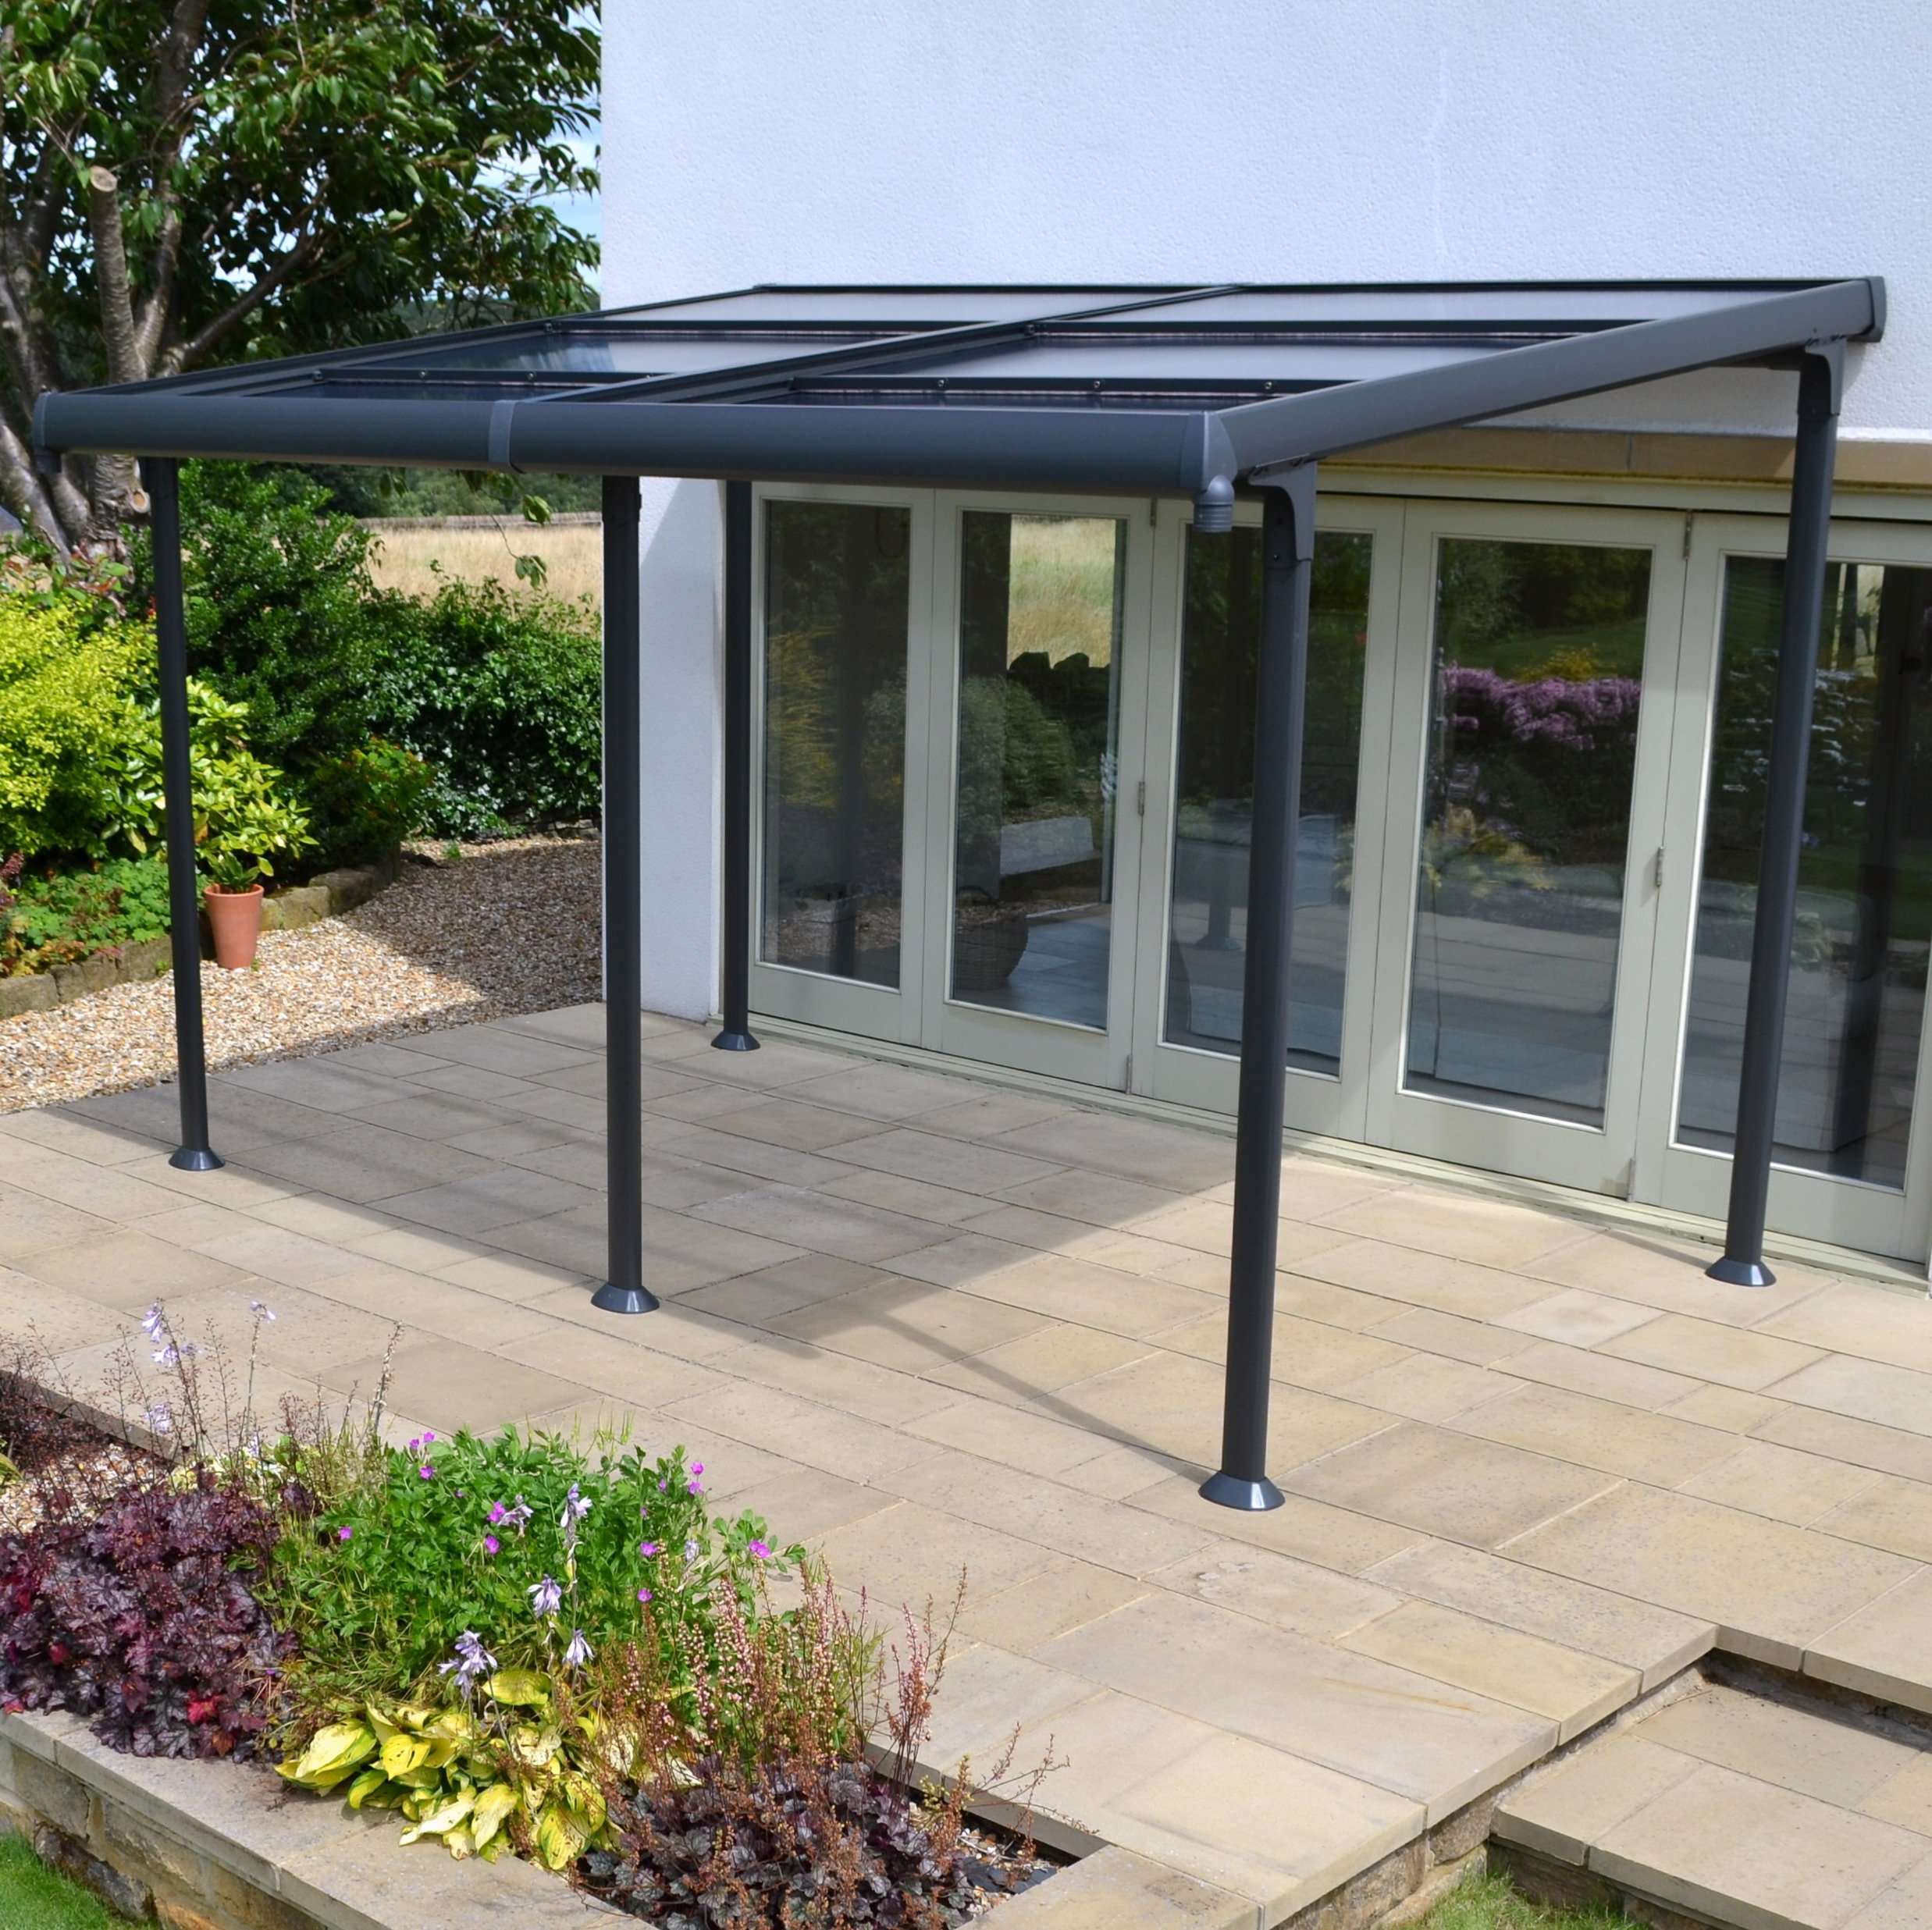 Aluminium 4m X 3m Wall Gazebo With Retractable Roof728/8313